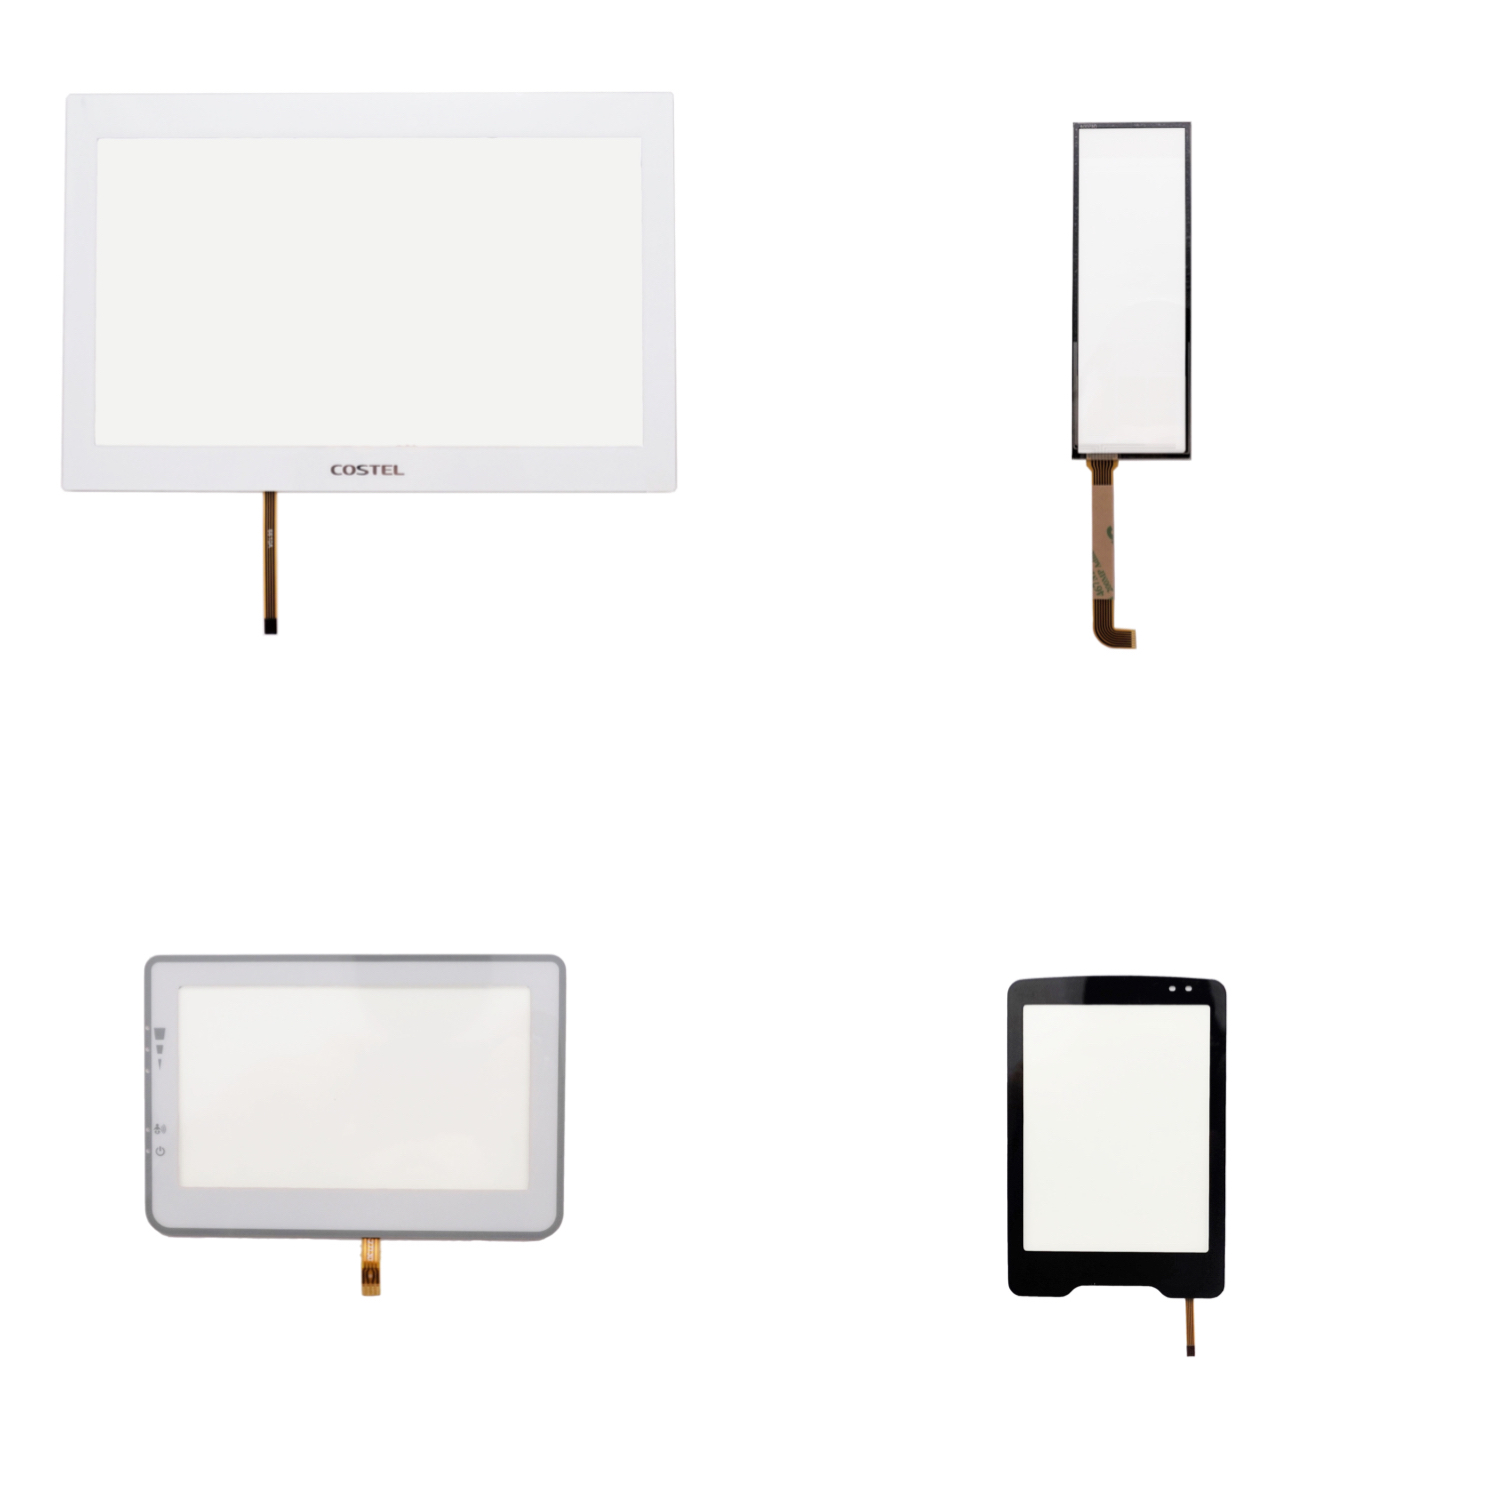 4wire 10.4 inch touch panel